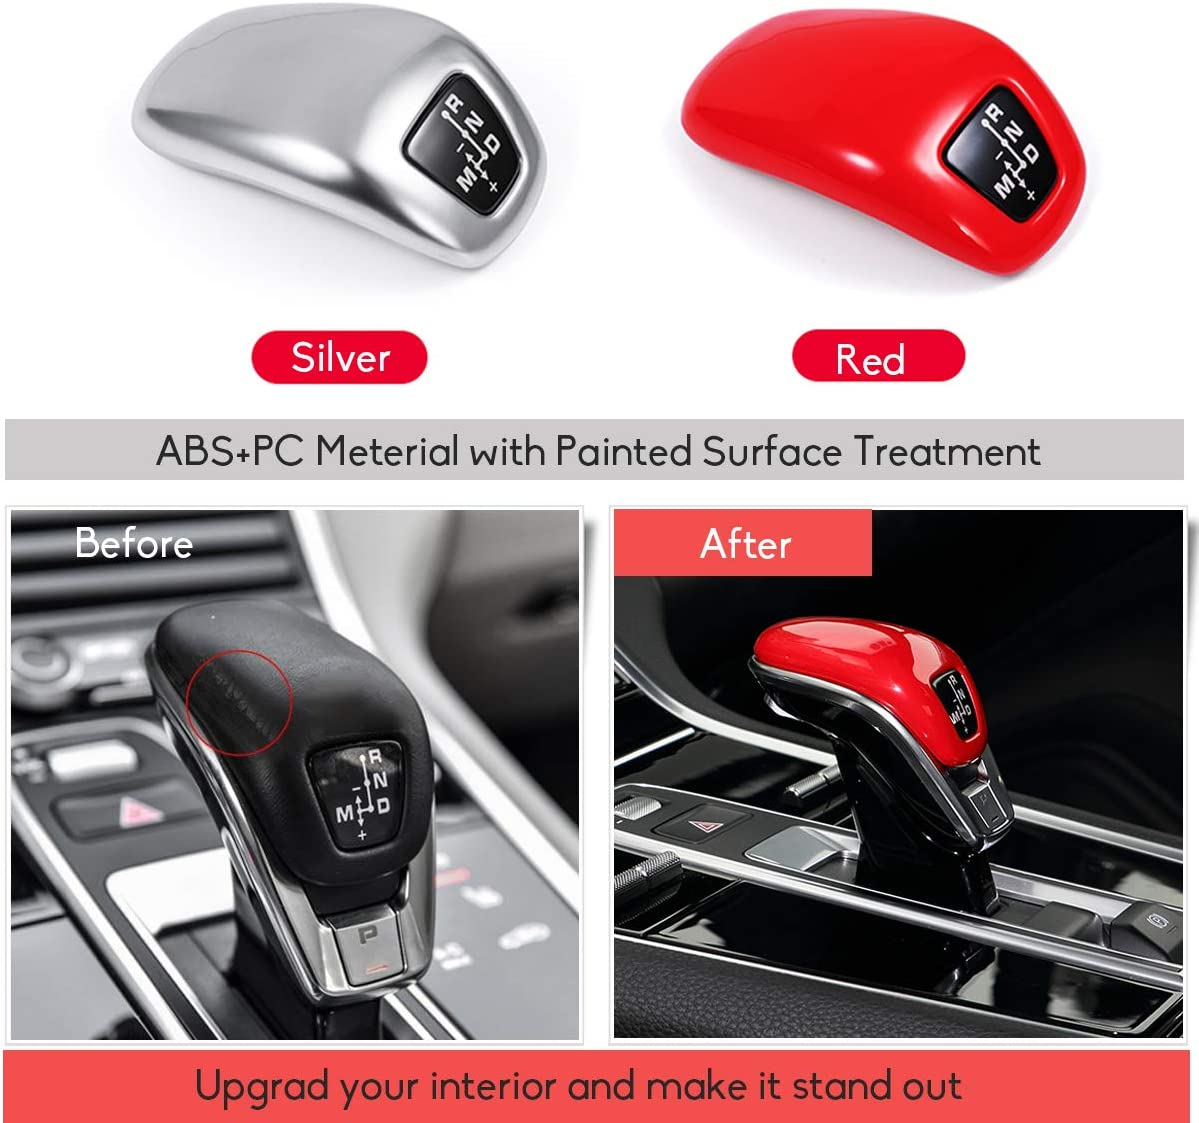 Glossy Red Shift Knob Cover Painted Shift Knob Protector Fits: Panamera 2017-2019 Jaronx Gear Shift Knob Cover Replacement for Porsche Panamera 2017-2019